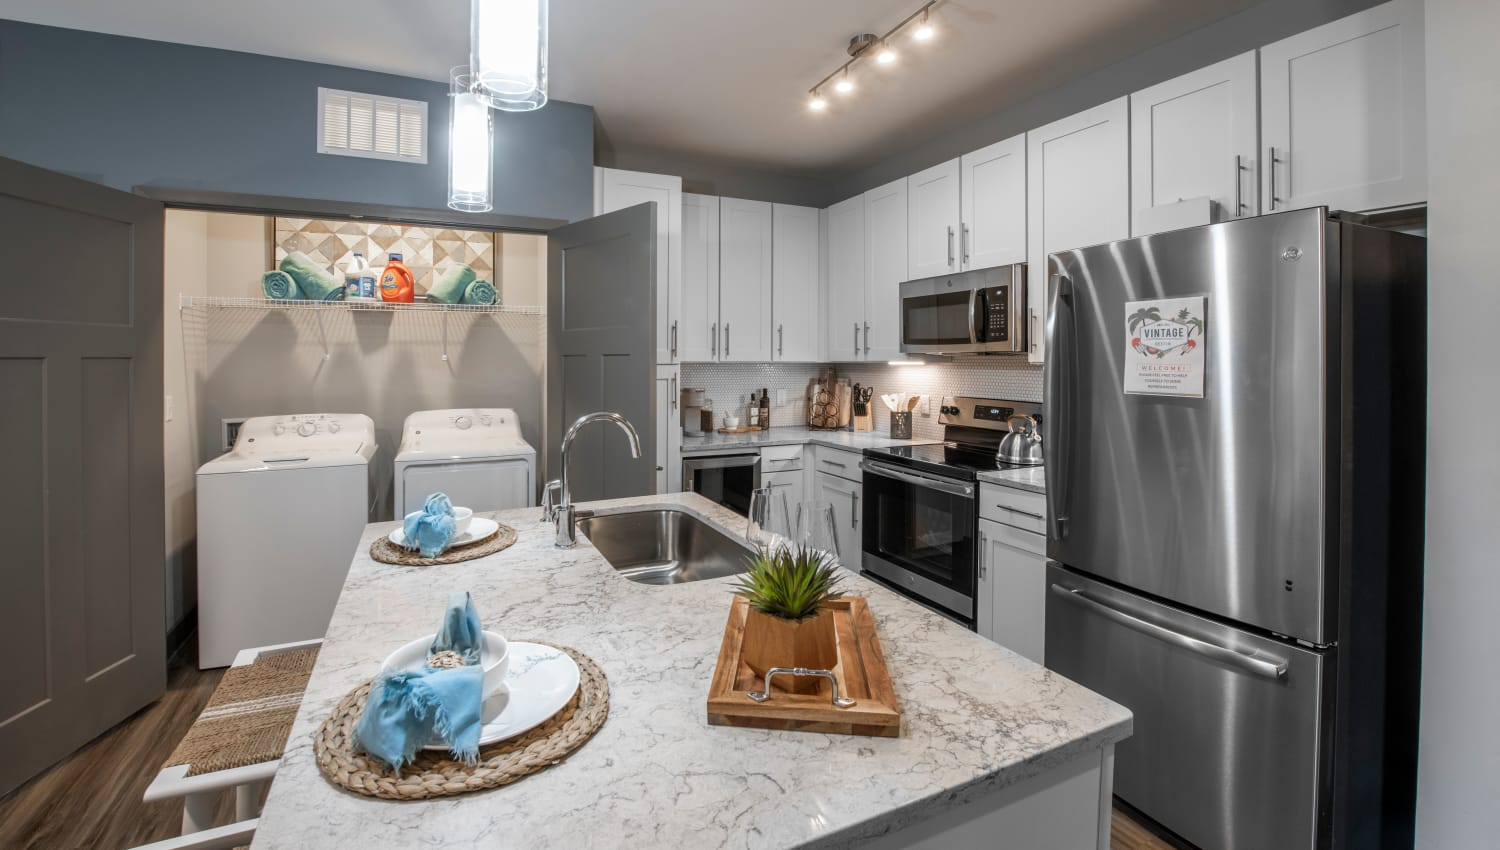 A kitchen with an adjacent washer and dryer closet at Olympus Emerald Coast in Destin, Florida